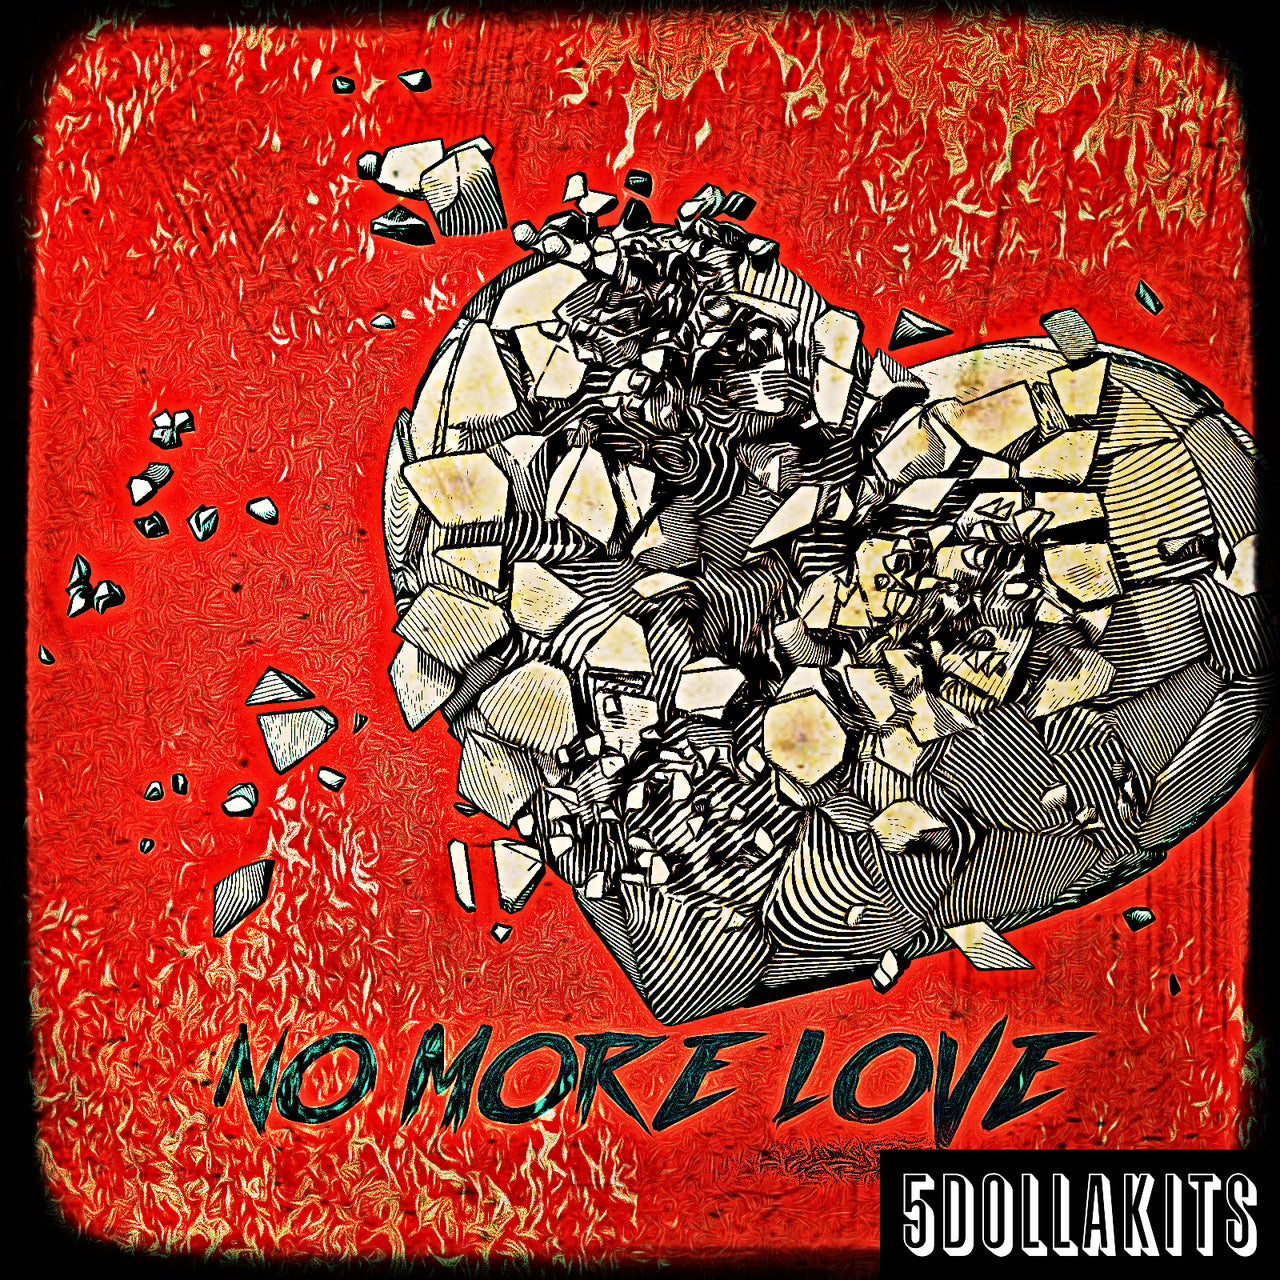 No More Love